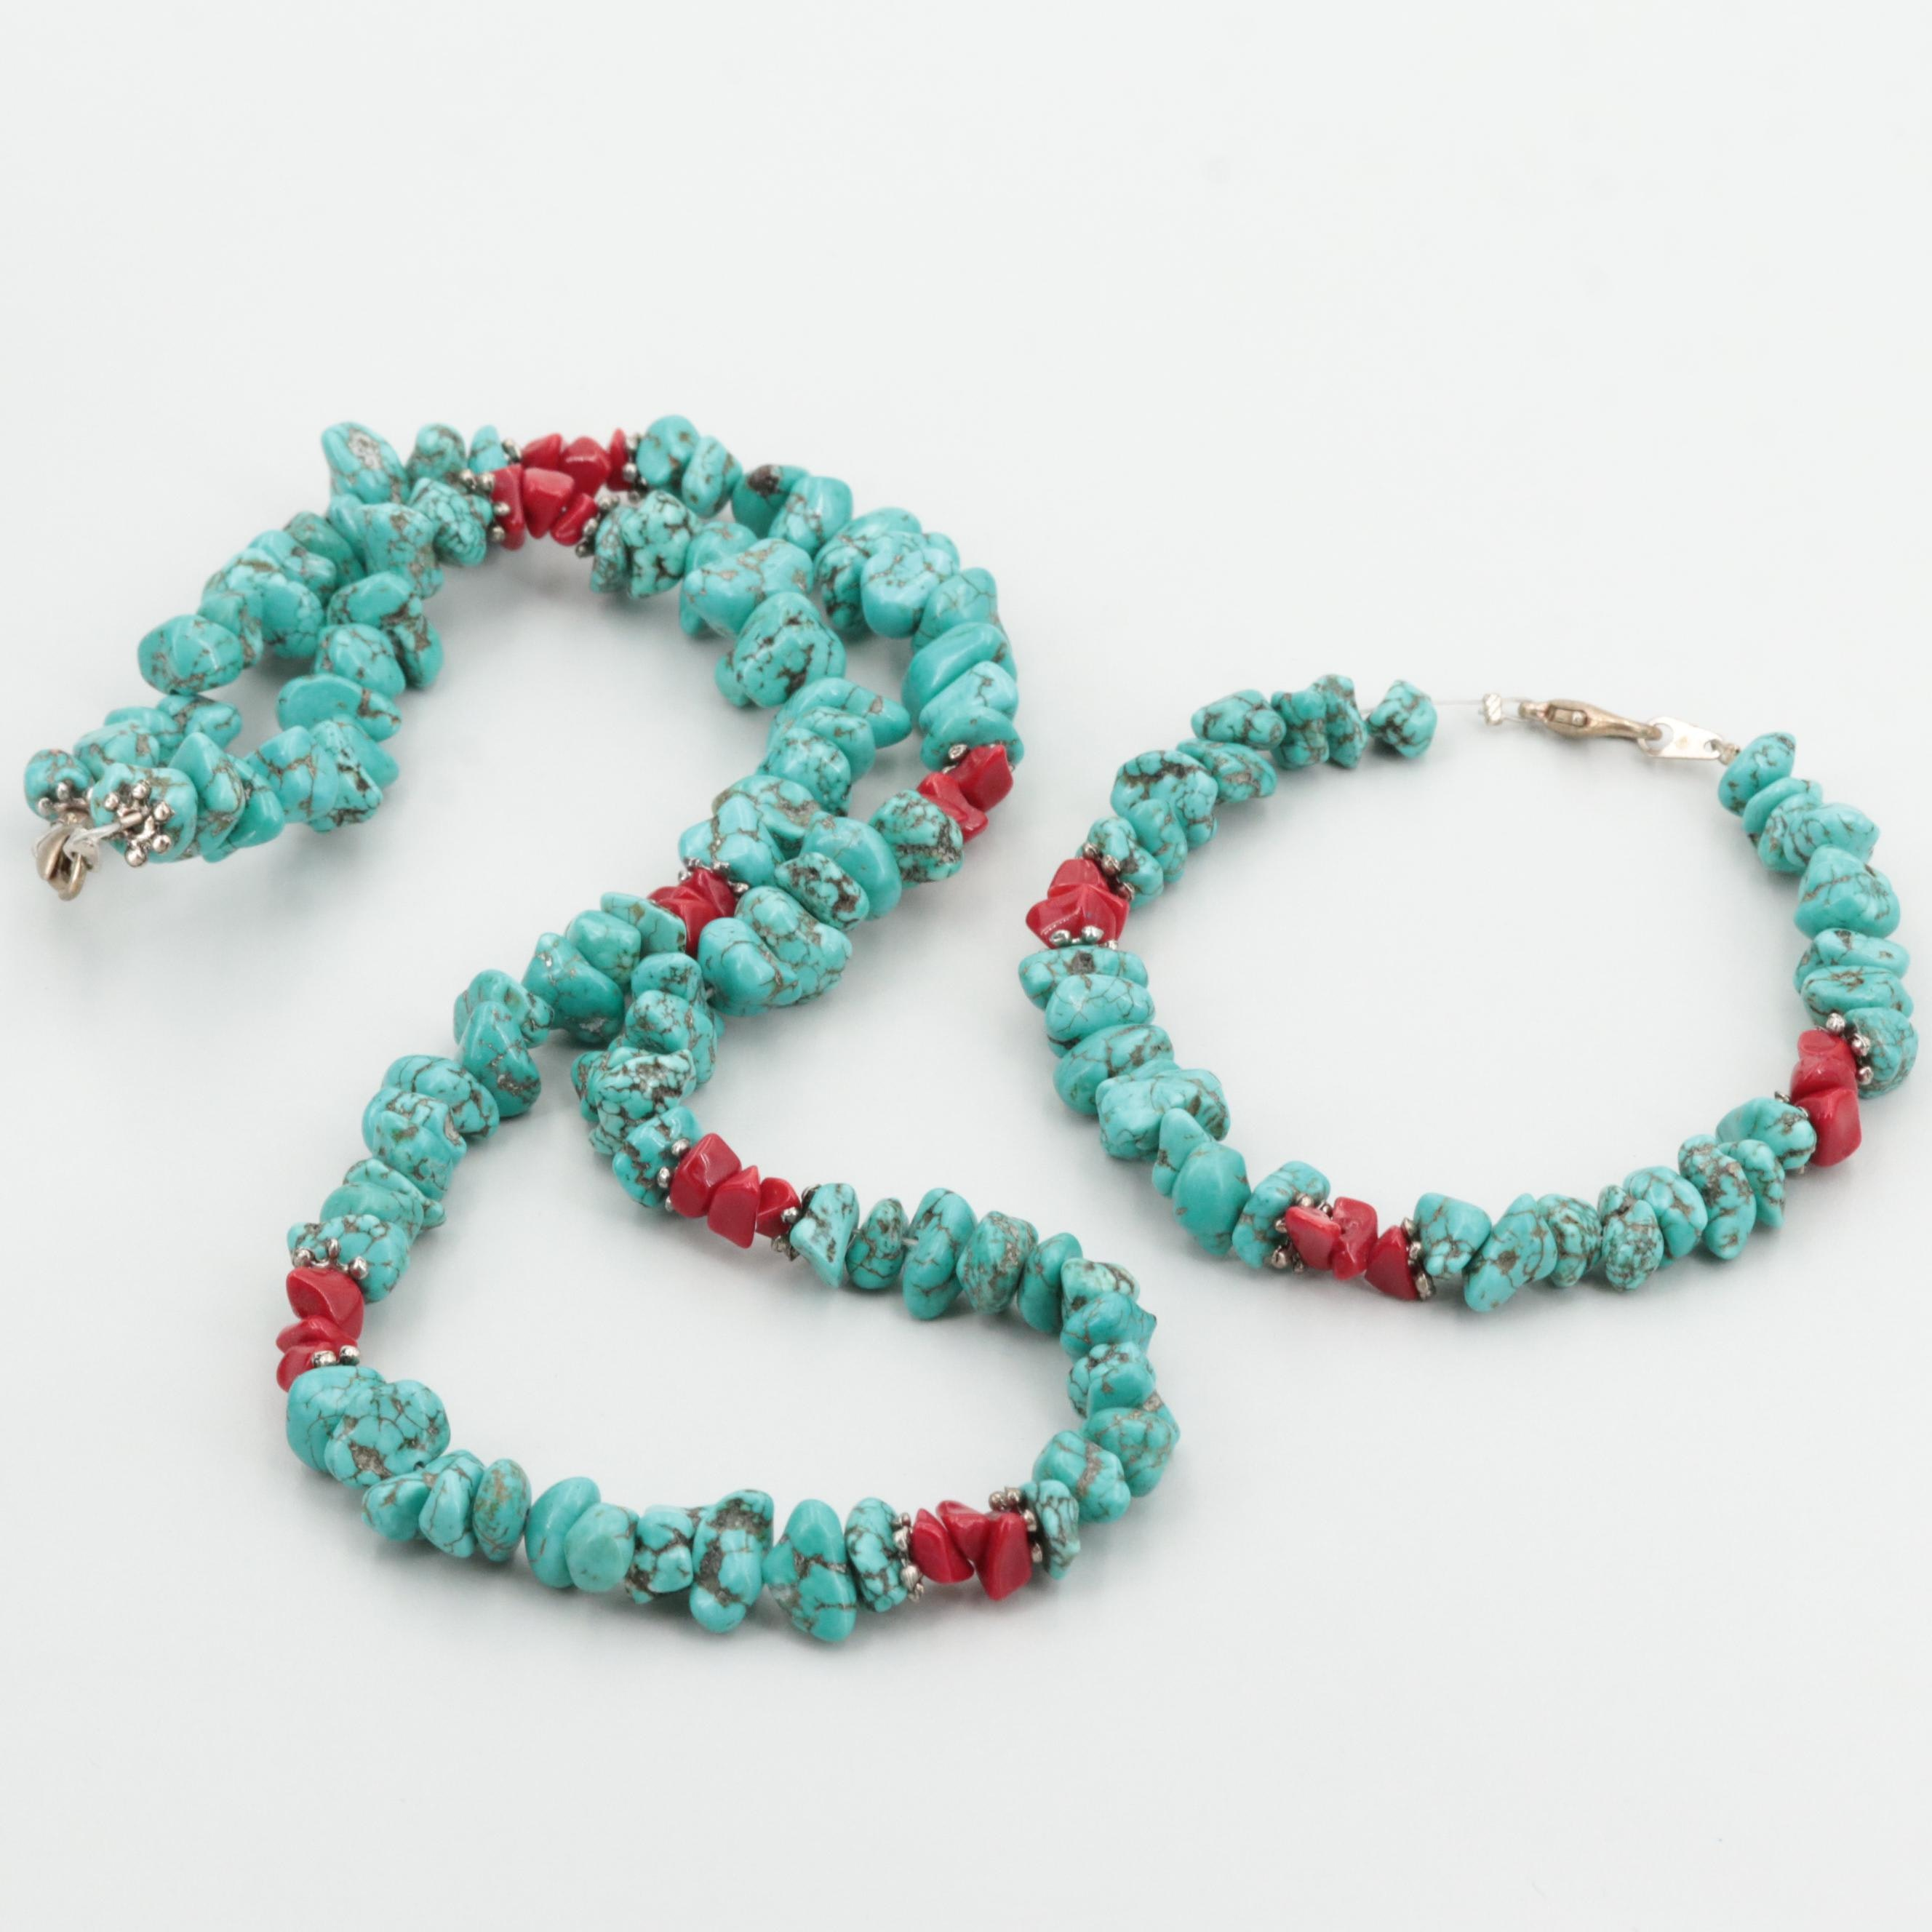 Southwestern Silver Tone Magnesite and Glass Nugget Necklace and Bracelet Set